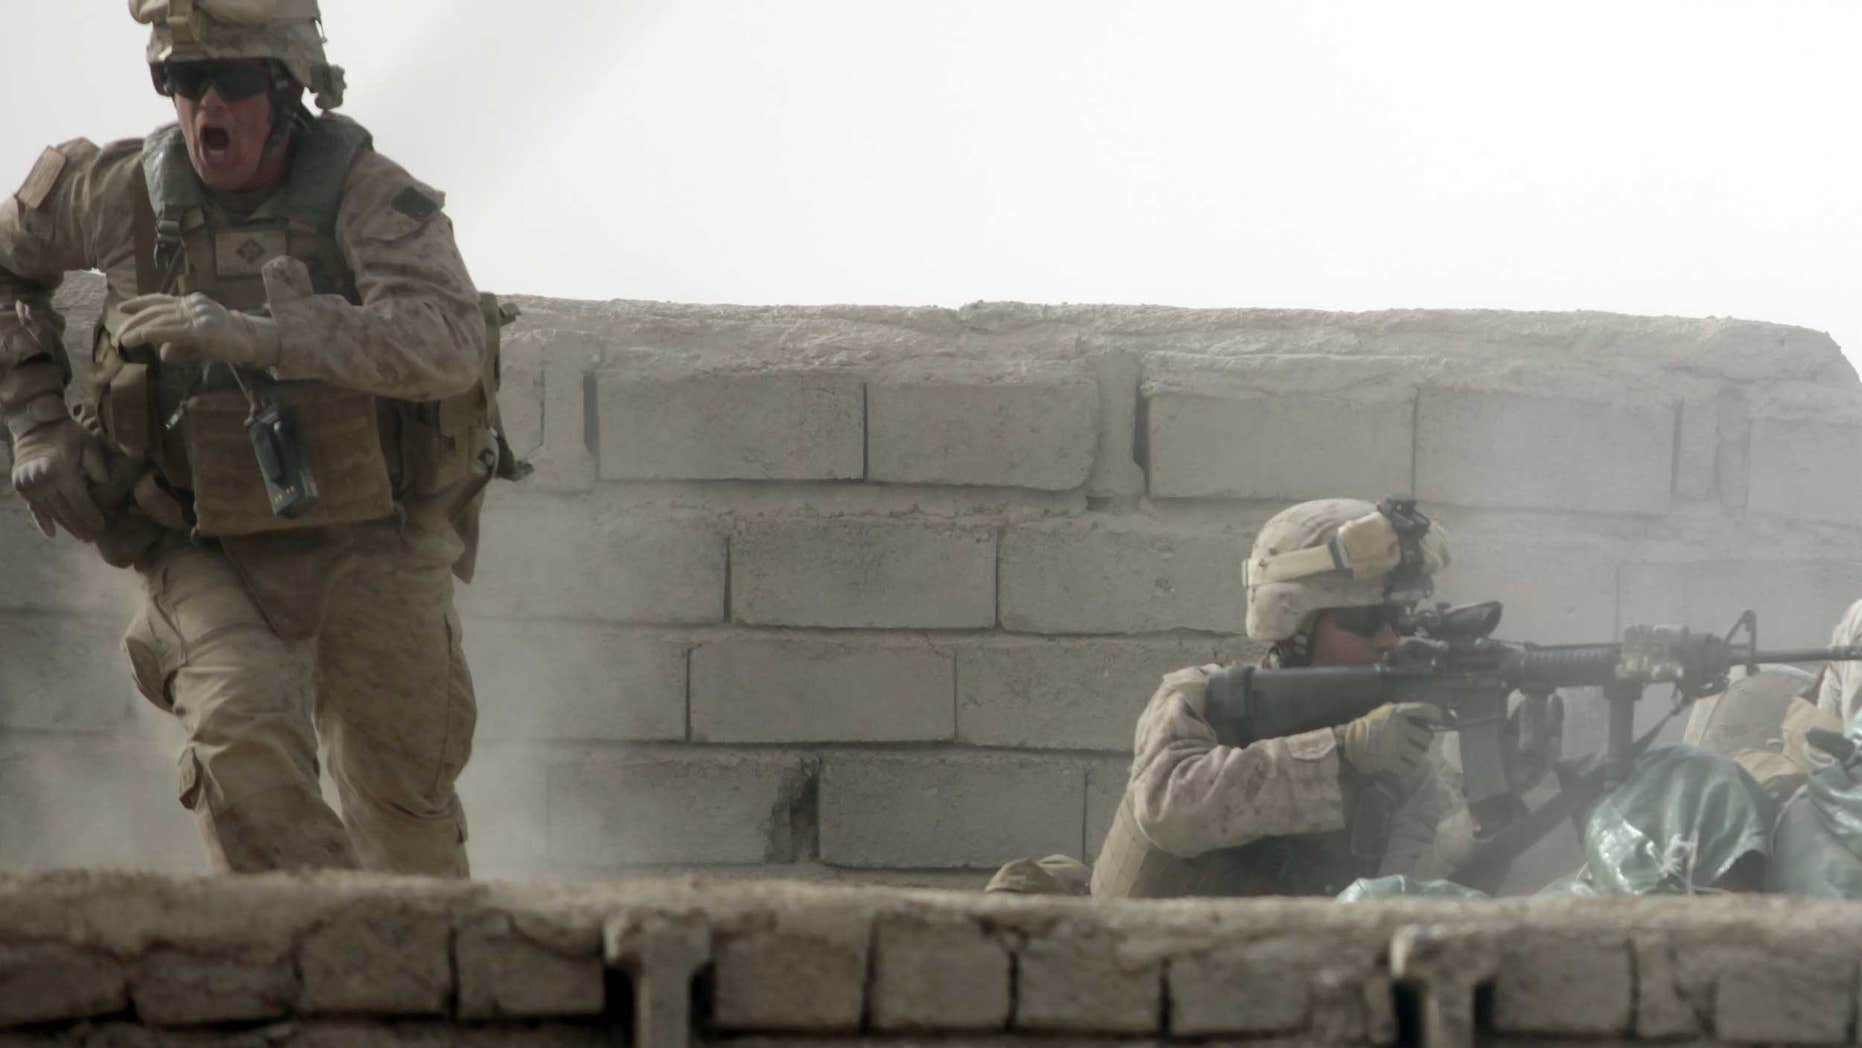 Feb. 14: A U.S. Marine from Bravo Company of the 1st Battalion, 6th Marines runs during a heavy gun battle in the town of Marjah, Afghanistan.